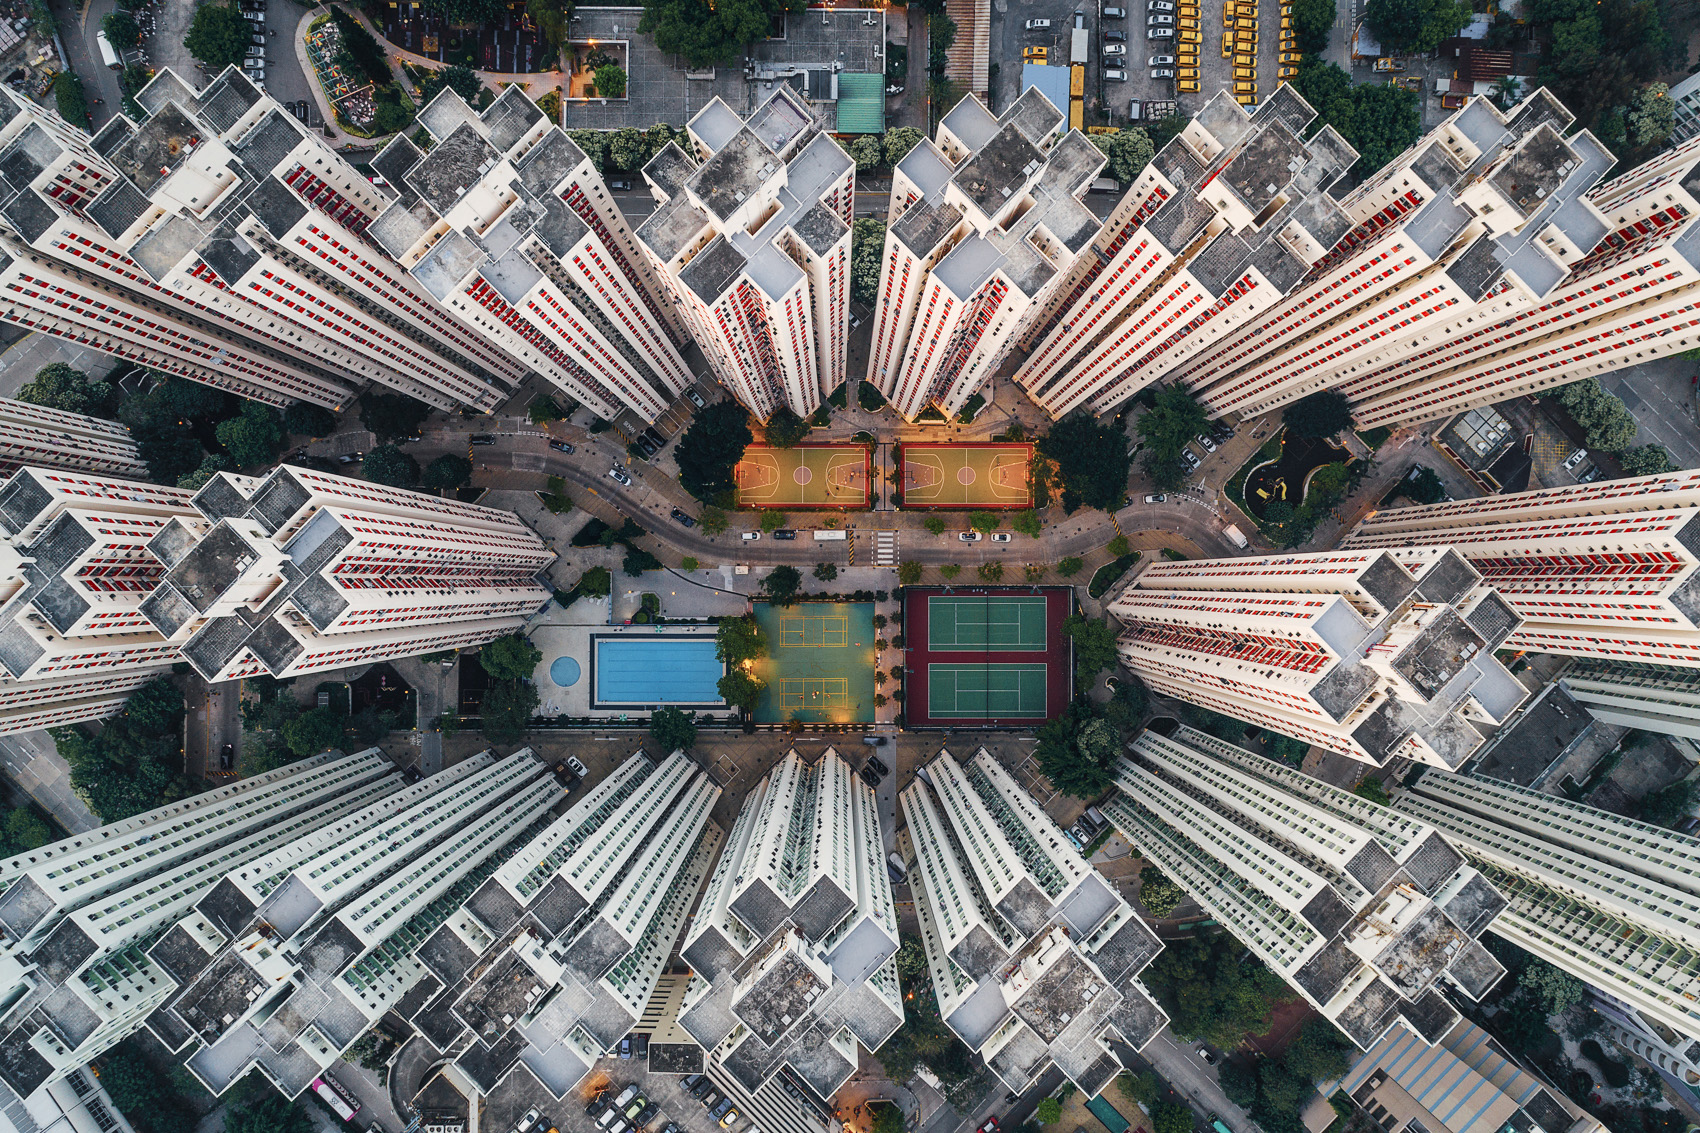 Hong Kong residential skyscrapers as seen from above